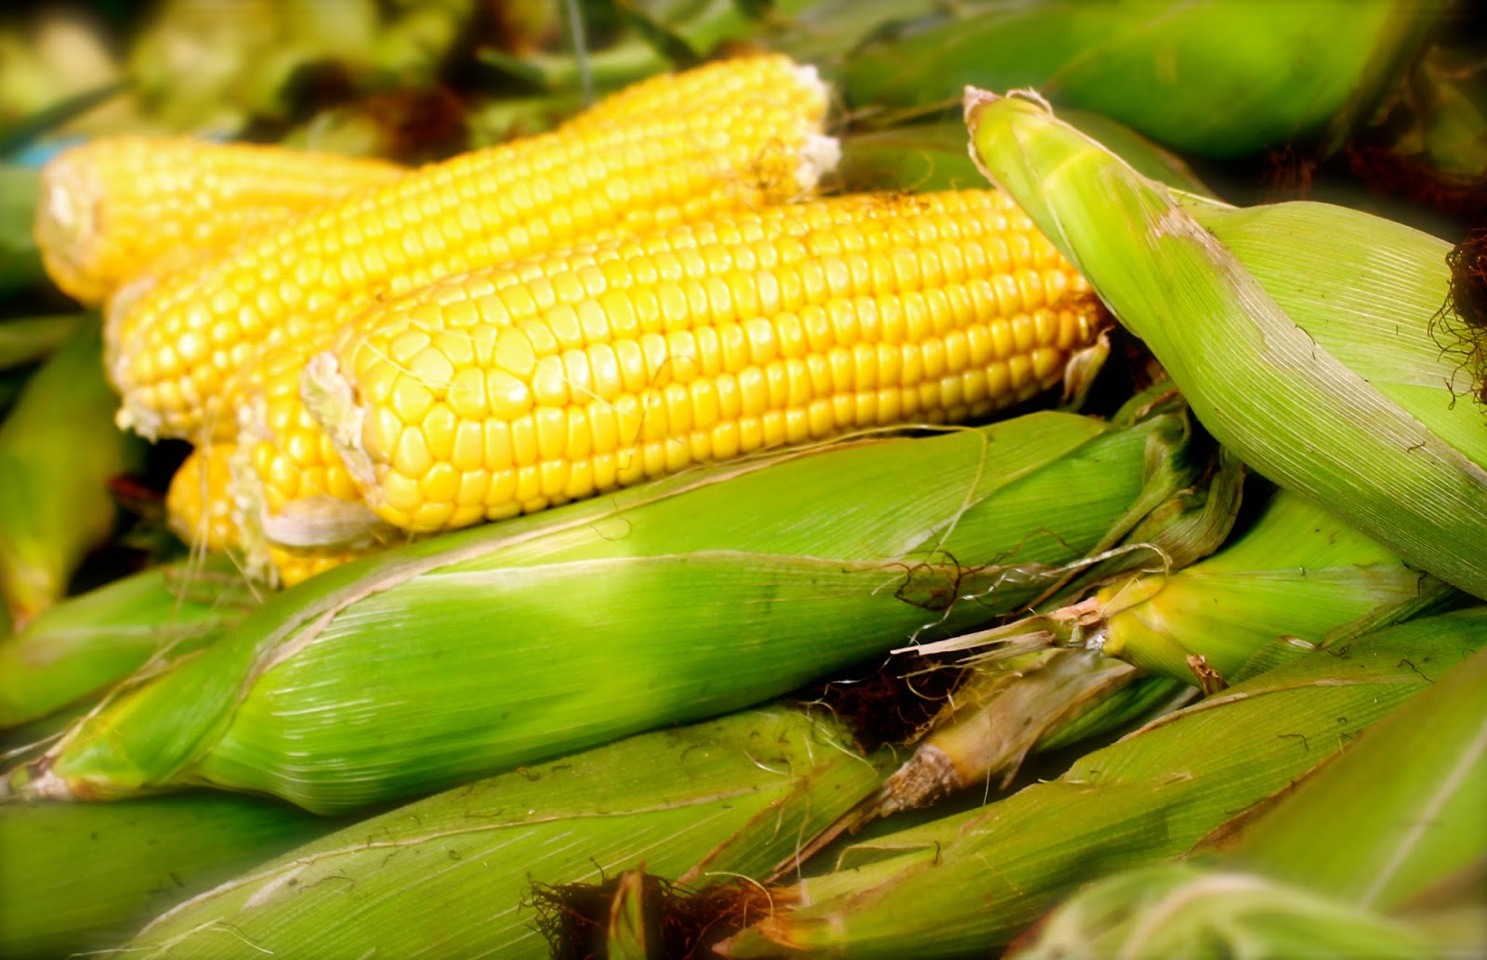 Keep unshucked corn at its best in the fridge by storing upright, in a tall container with stems submerged in water until ready to cook. Like a flower. It will last much longer.